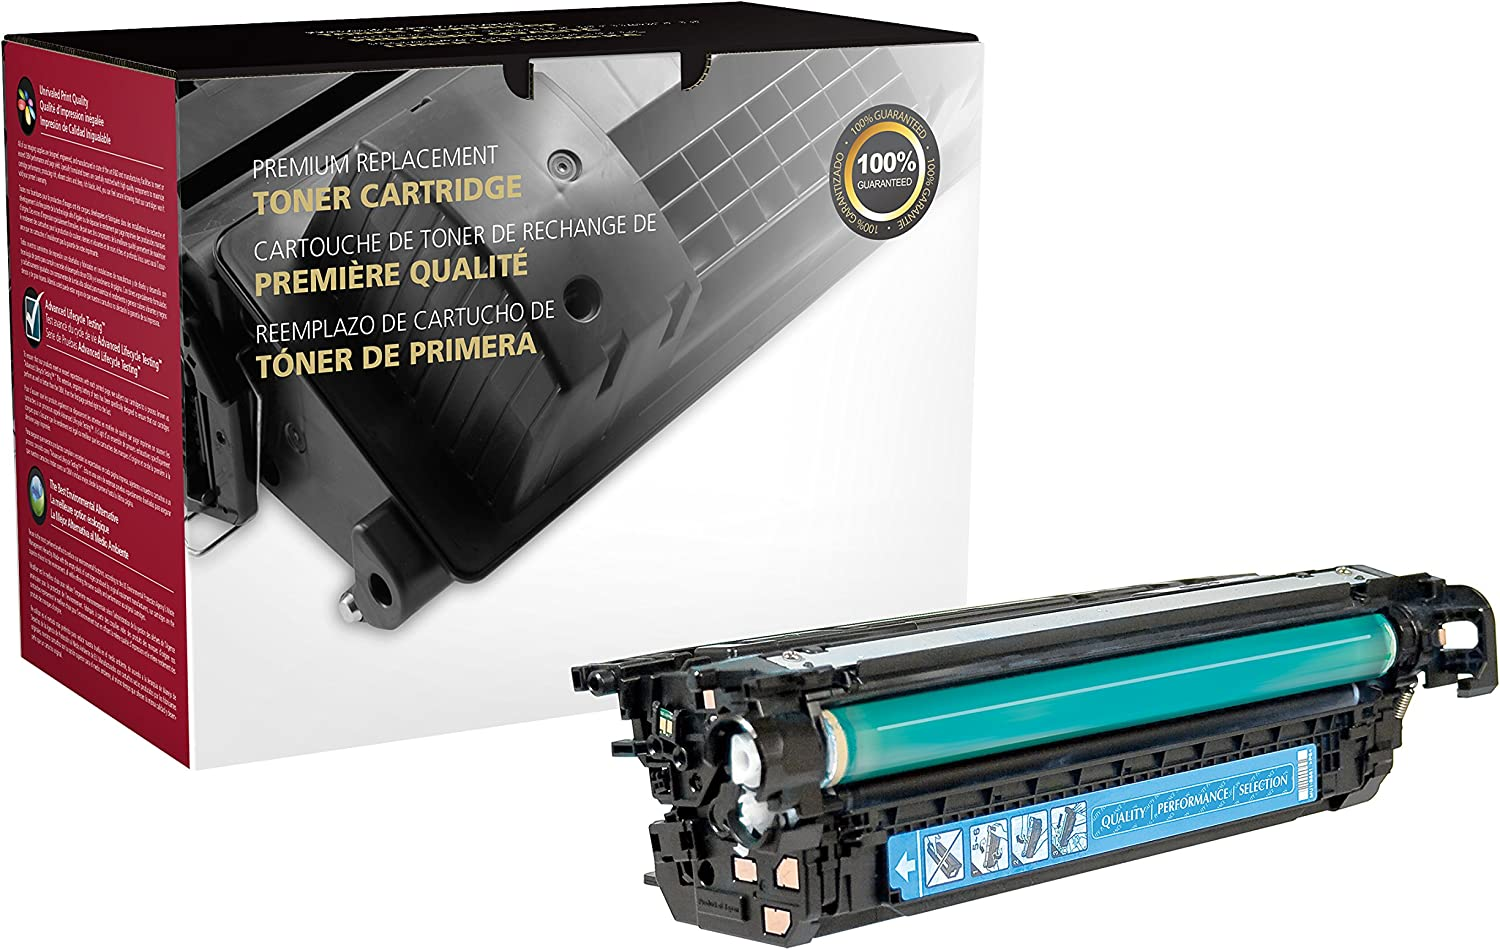 Inksters Remanufactured Toner Cartridge Replacement for HP CP4025 / CP4525 Cyan CE261A (HP 648A) 11K Pages